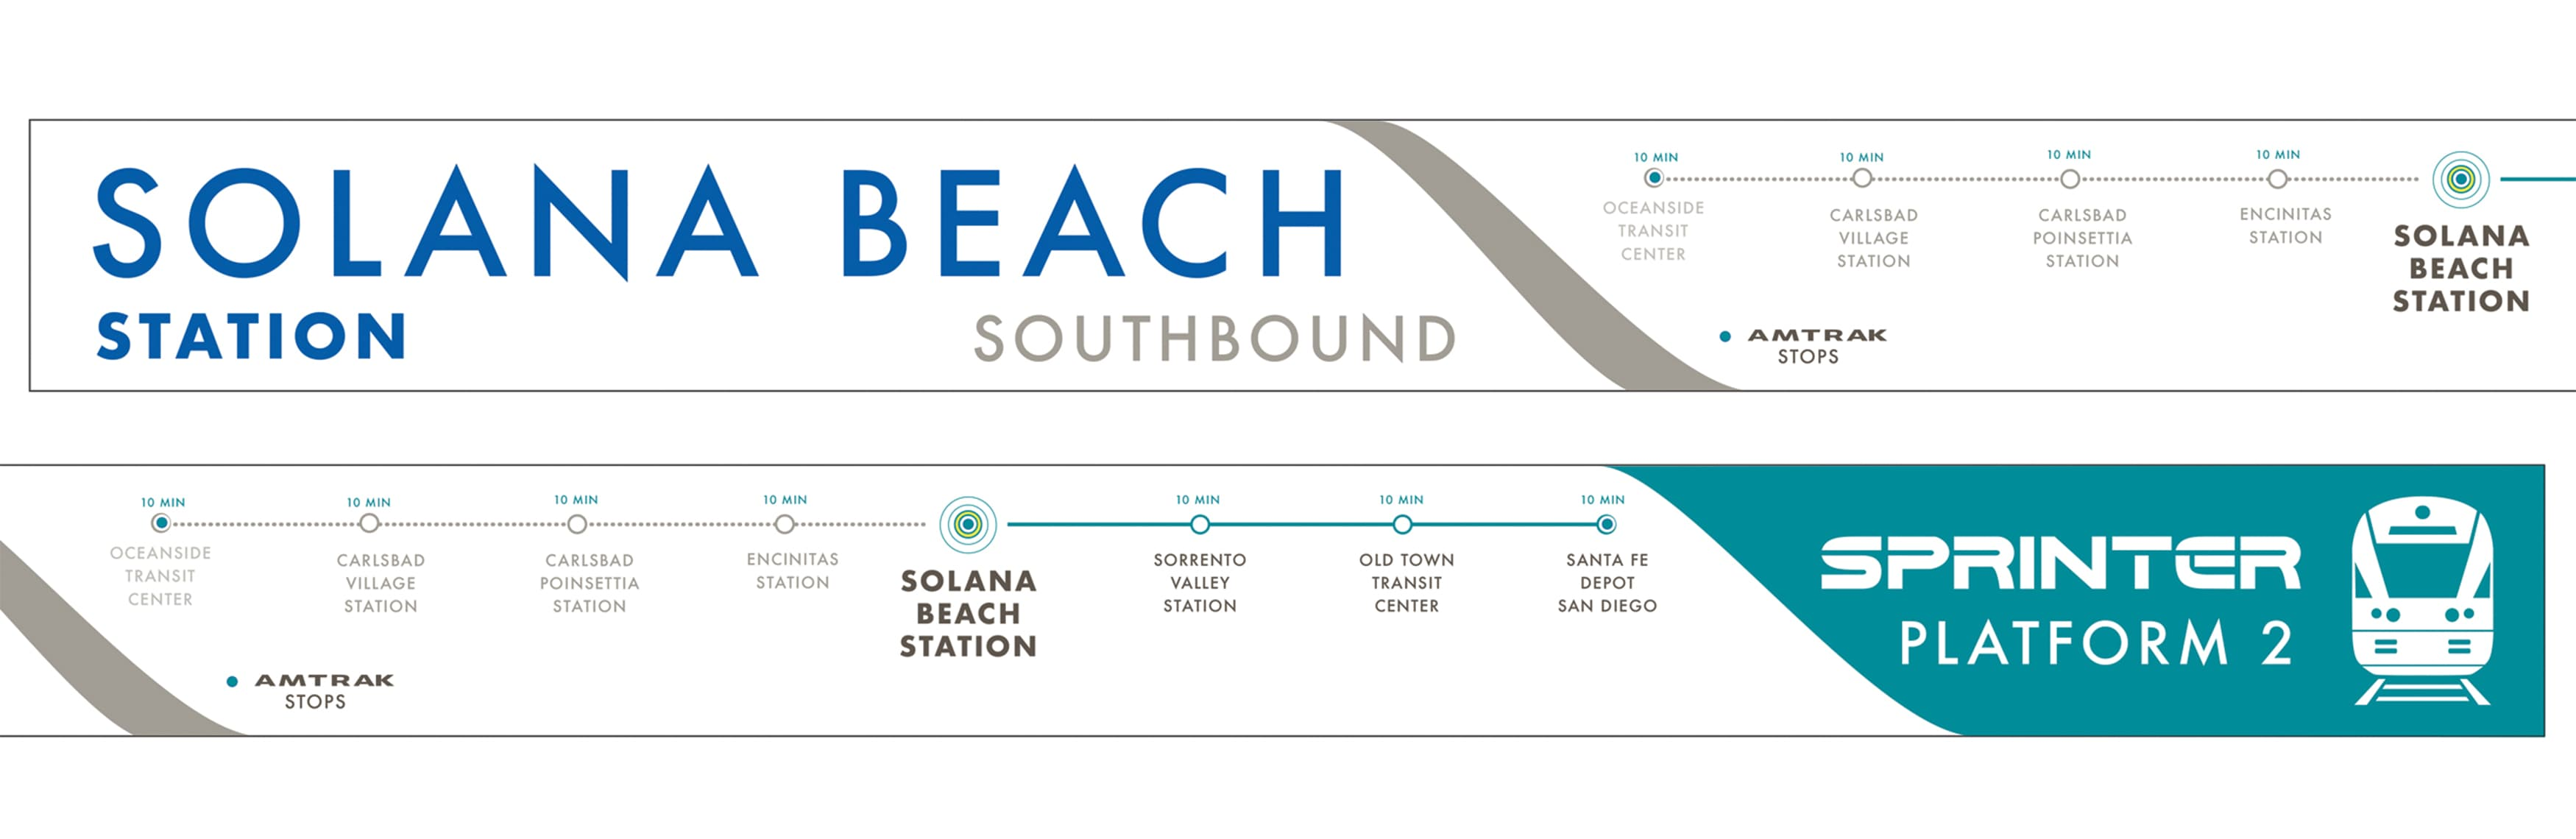 North County Transit District, the transit system in northern San Diego, California, worked with RSM Design to re-think what their transit system looks like. Transit map wayfinding system.